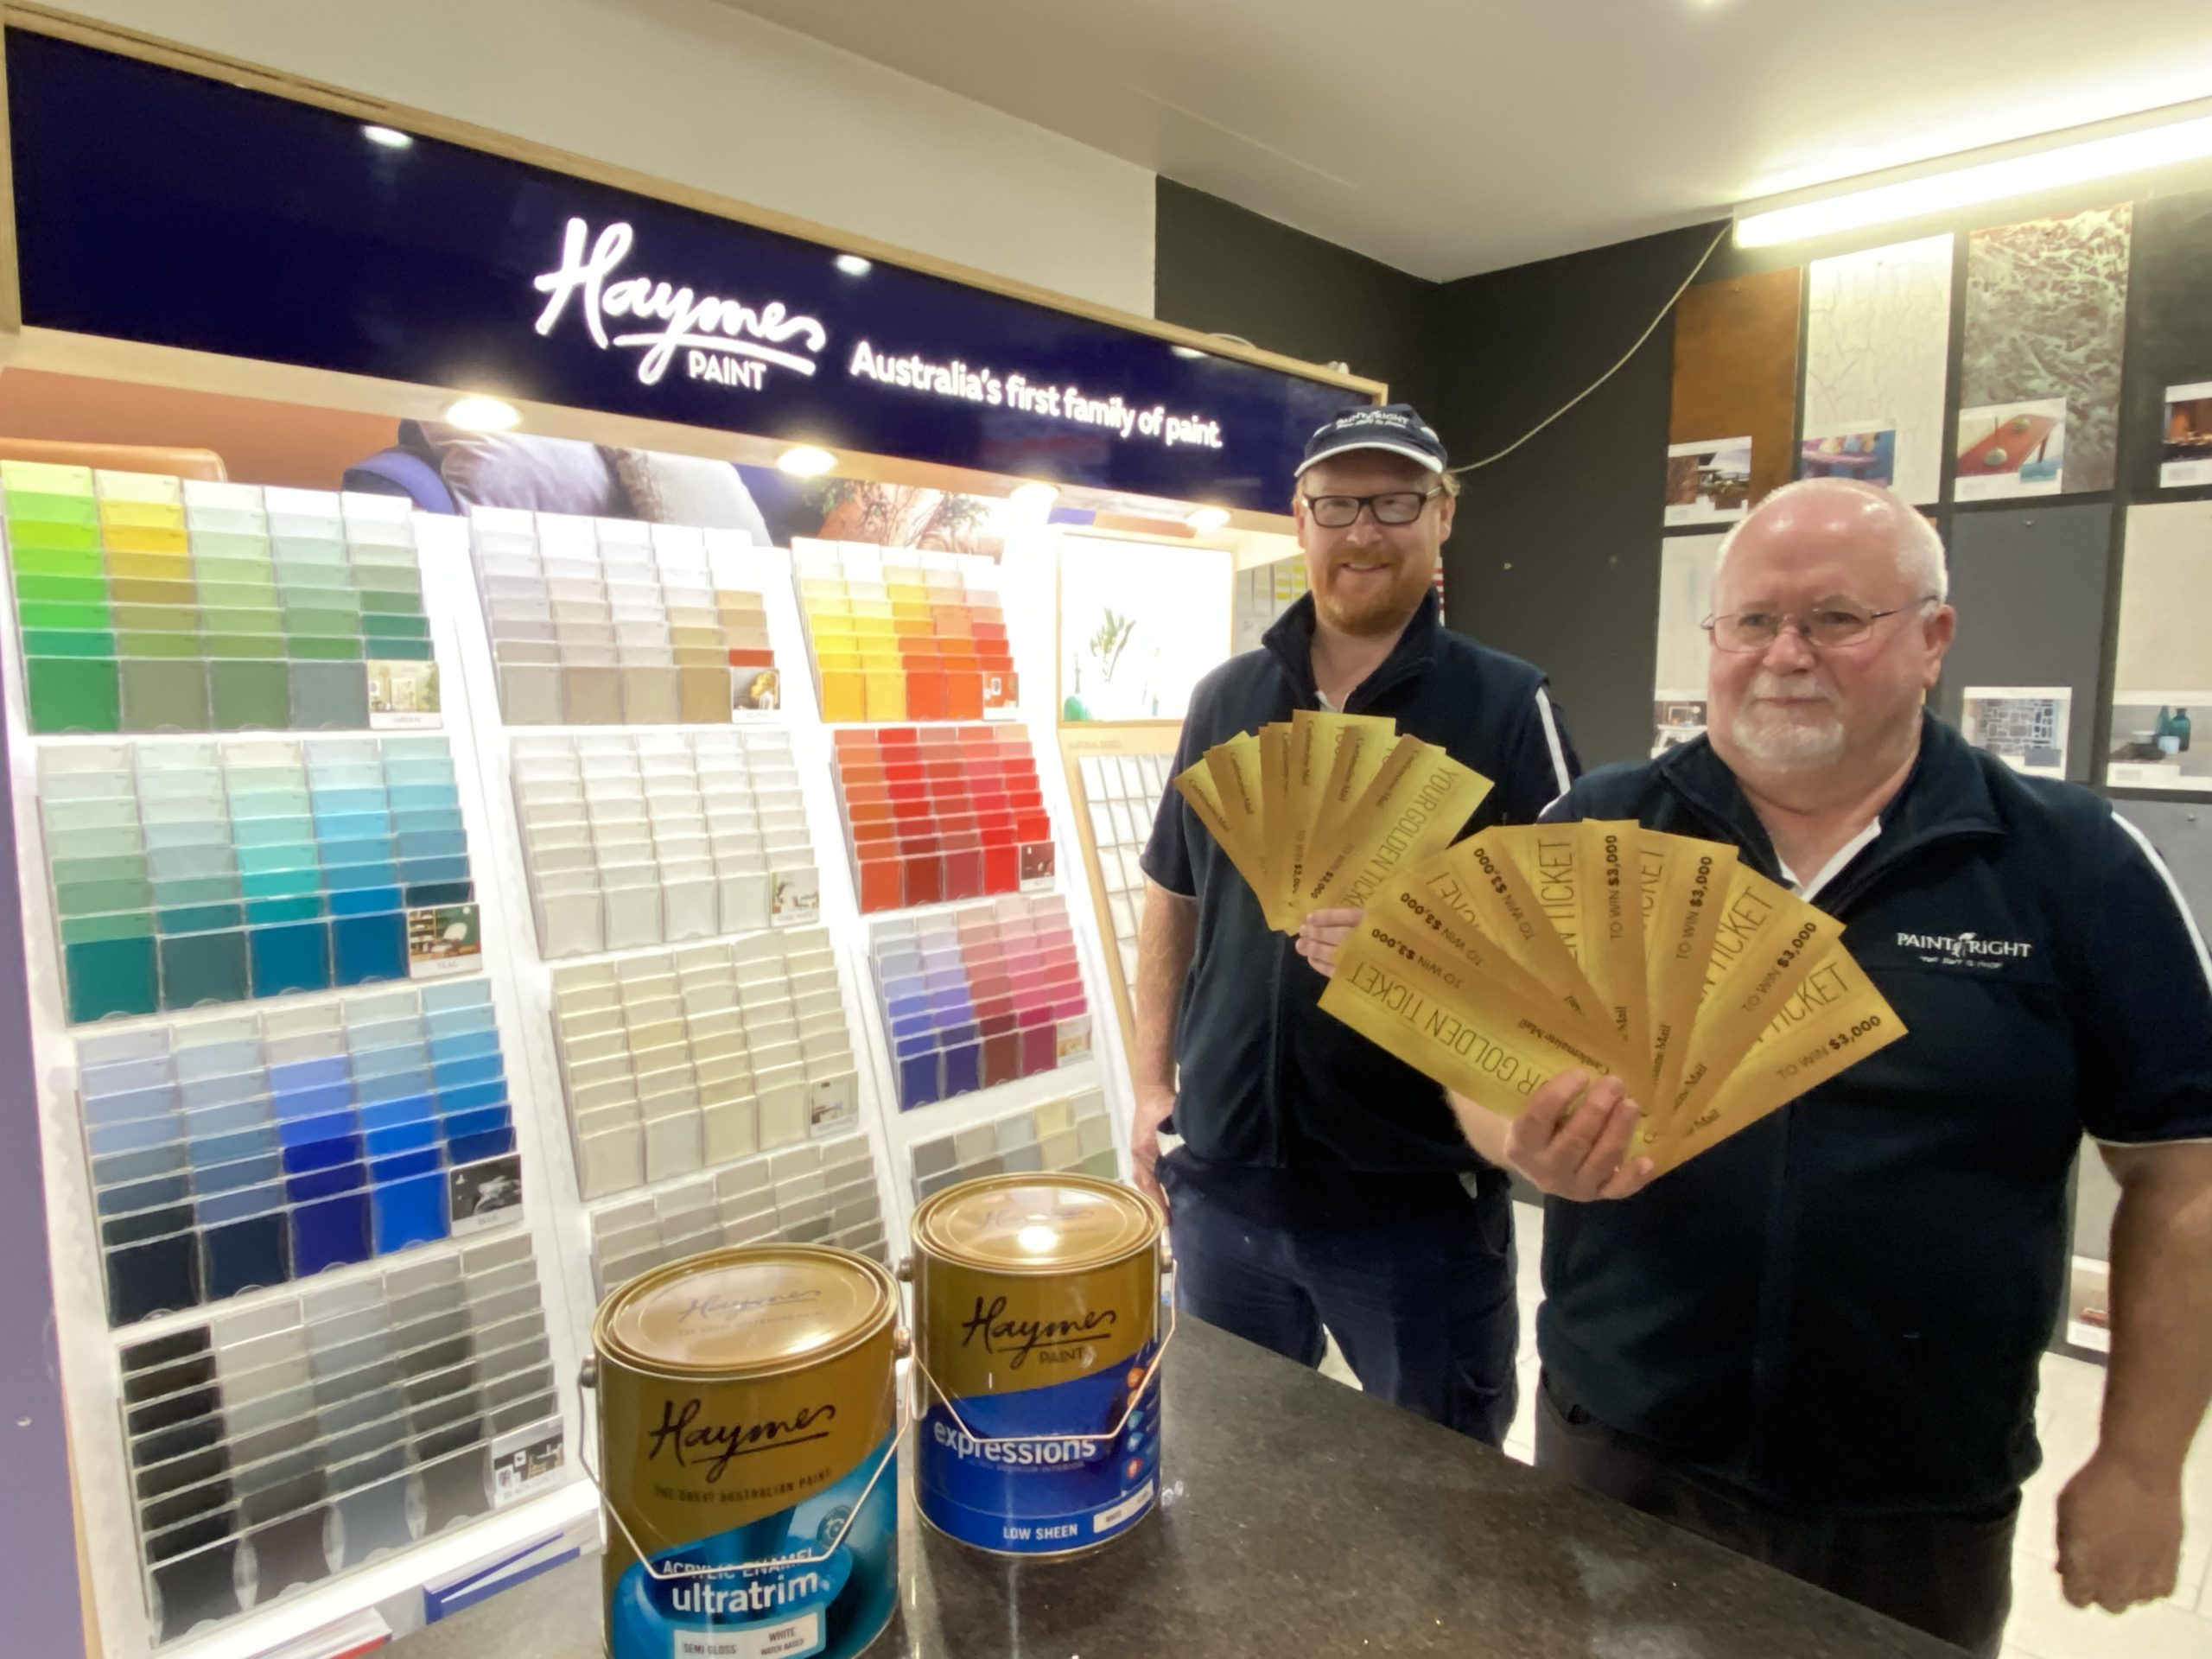 Scott Berry and Rod Entwisle of Dales Discounts are excited to be part of the Golden Ticket buy local promotion. Get in an see the local experts for all your paint and tile needs.